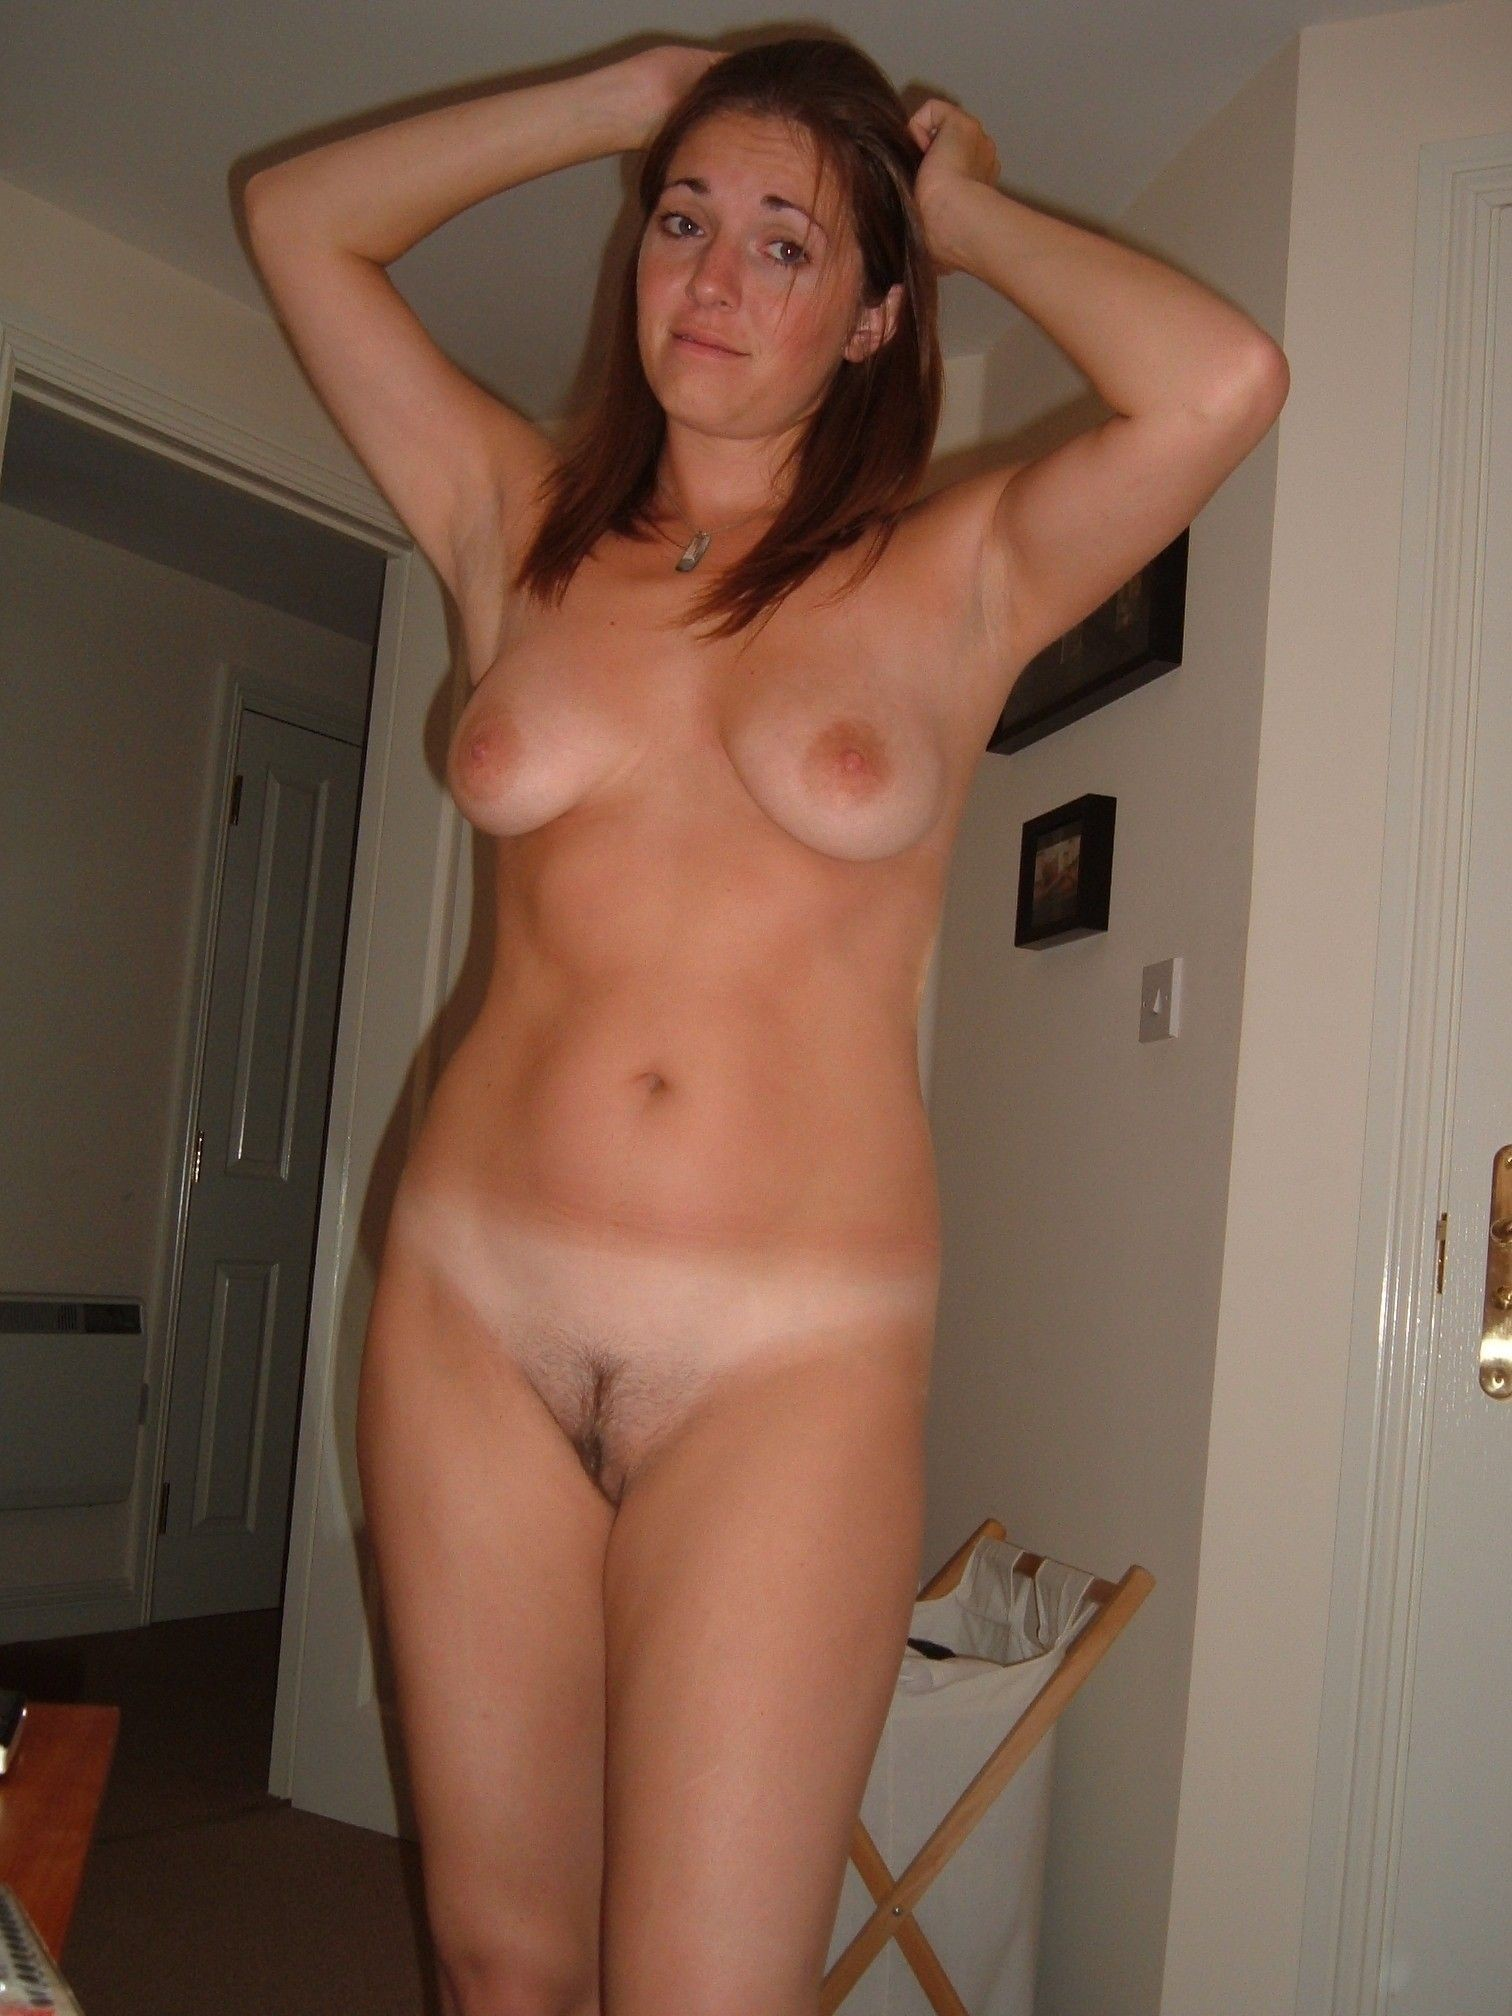 Rate my ex wife